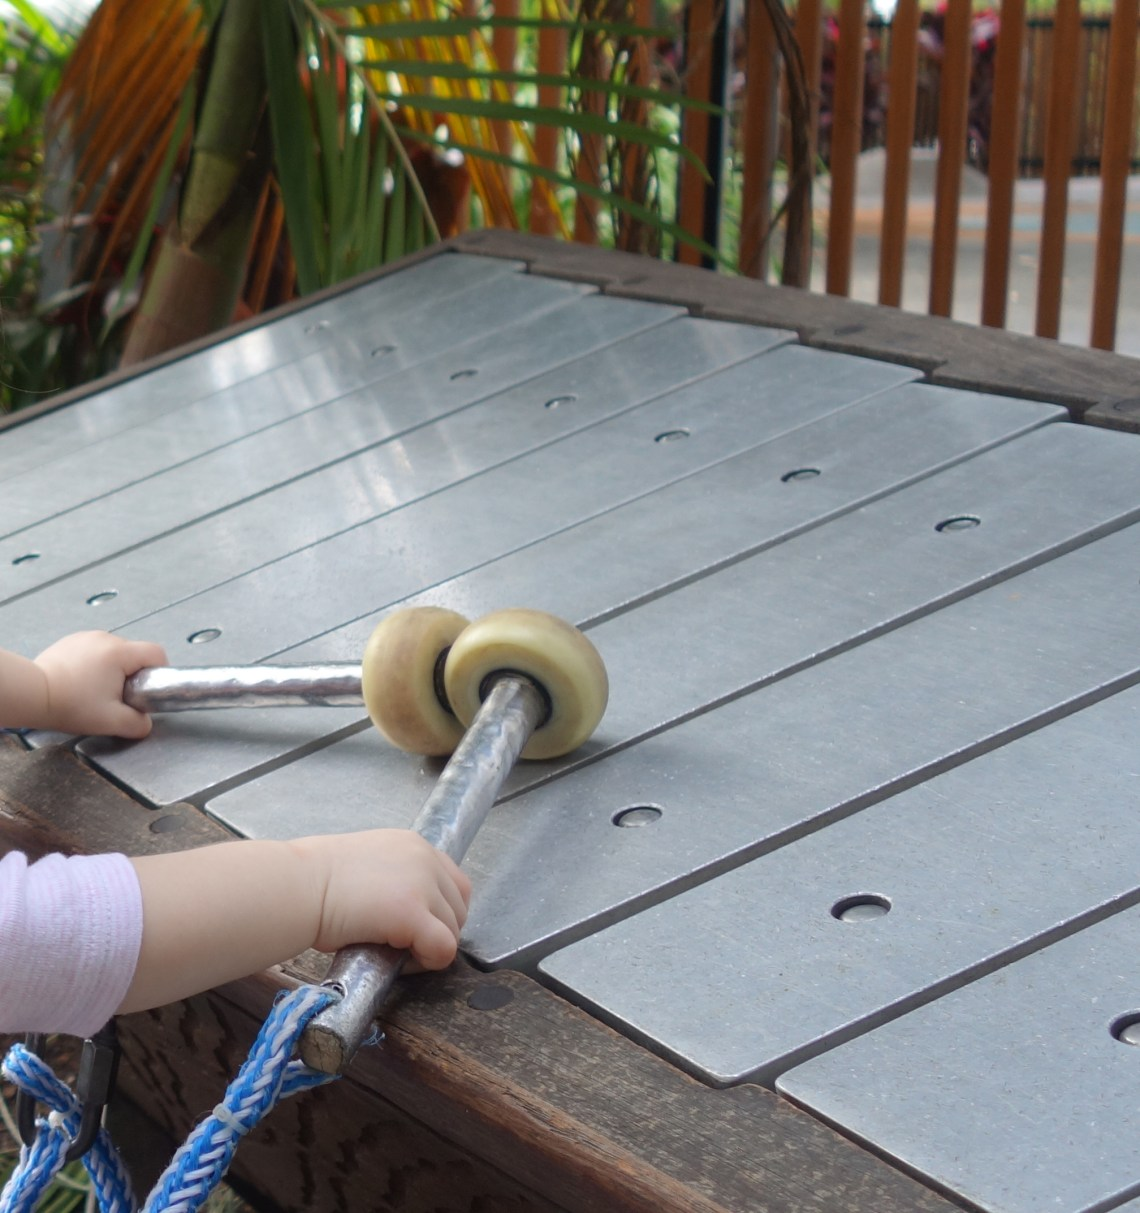 xylophone, UOW, Wollongong University, Discovery Space